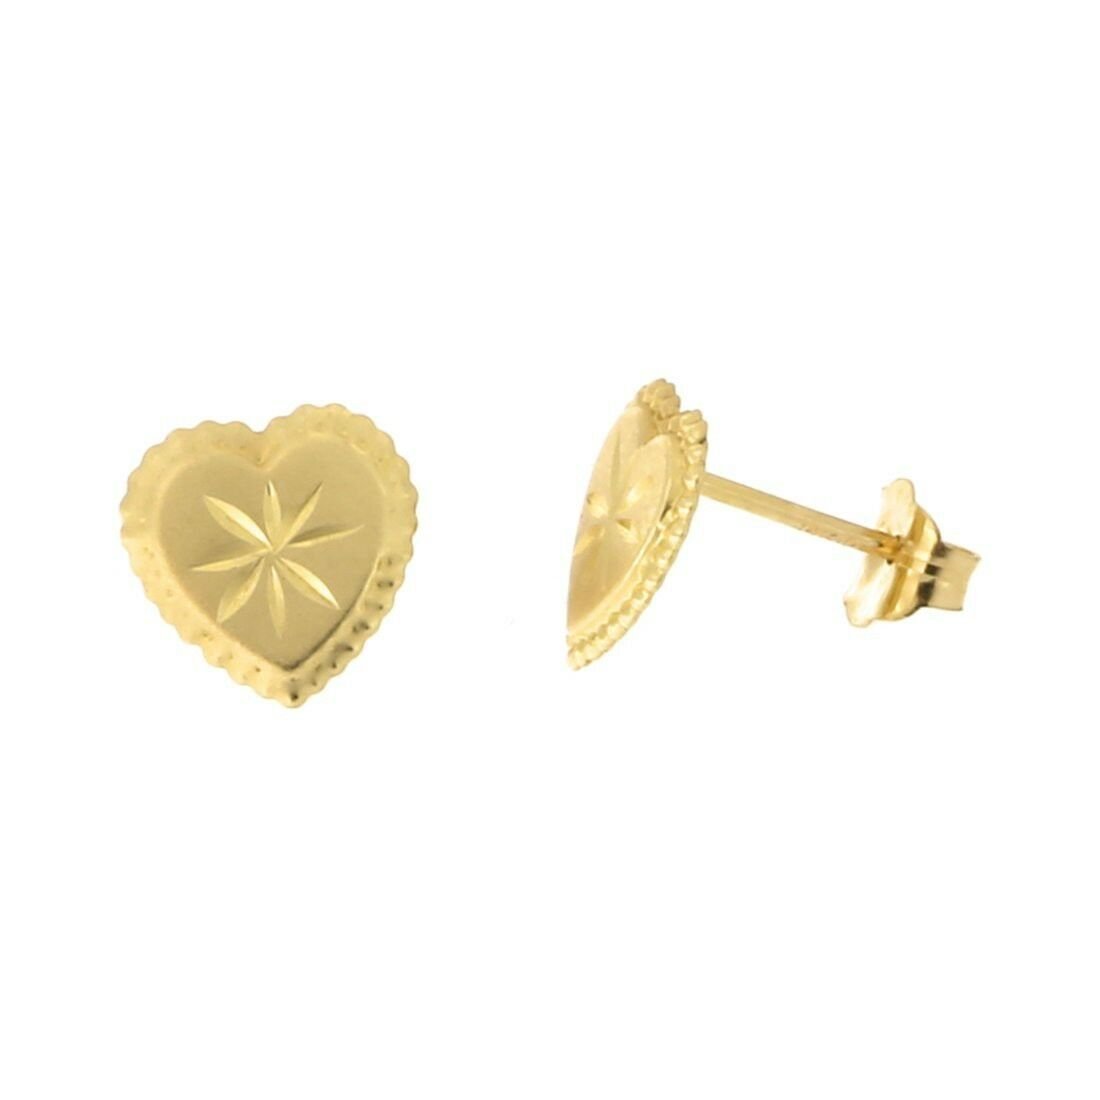 14k Yellow gold Diamond Cut Heart with Scalloped Edge Stud Earrings